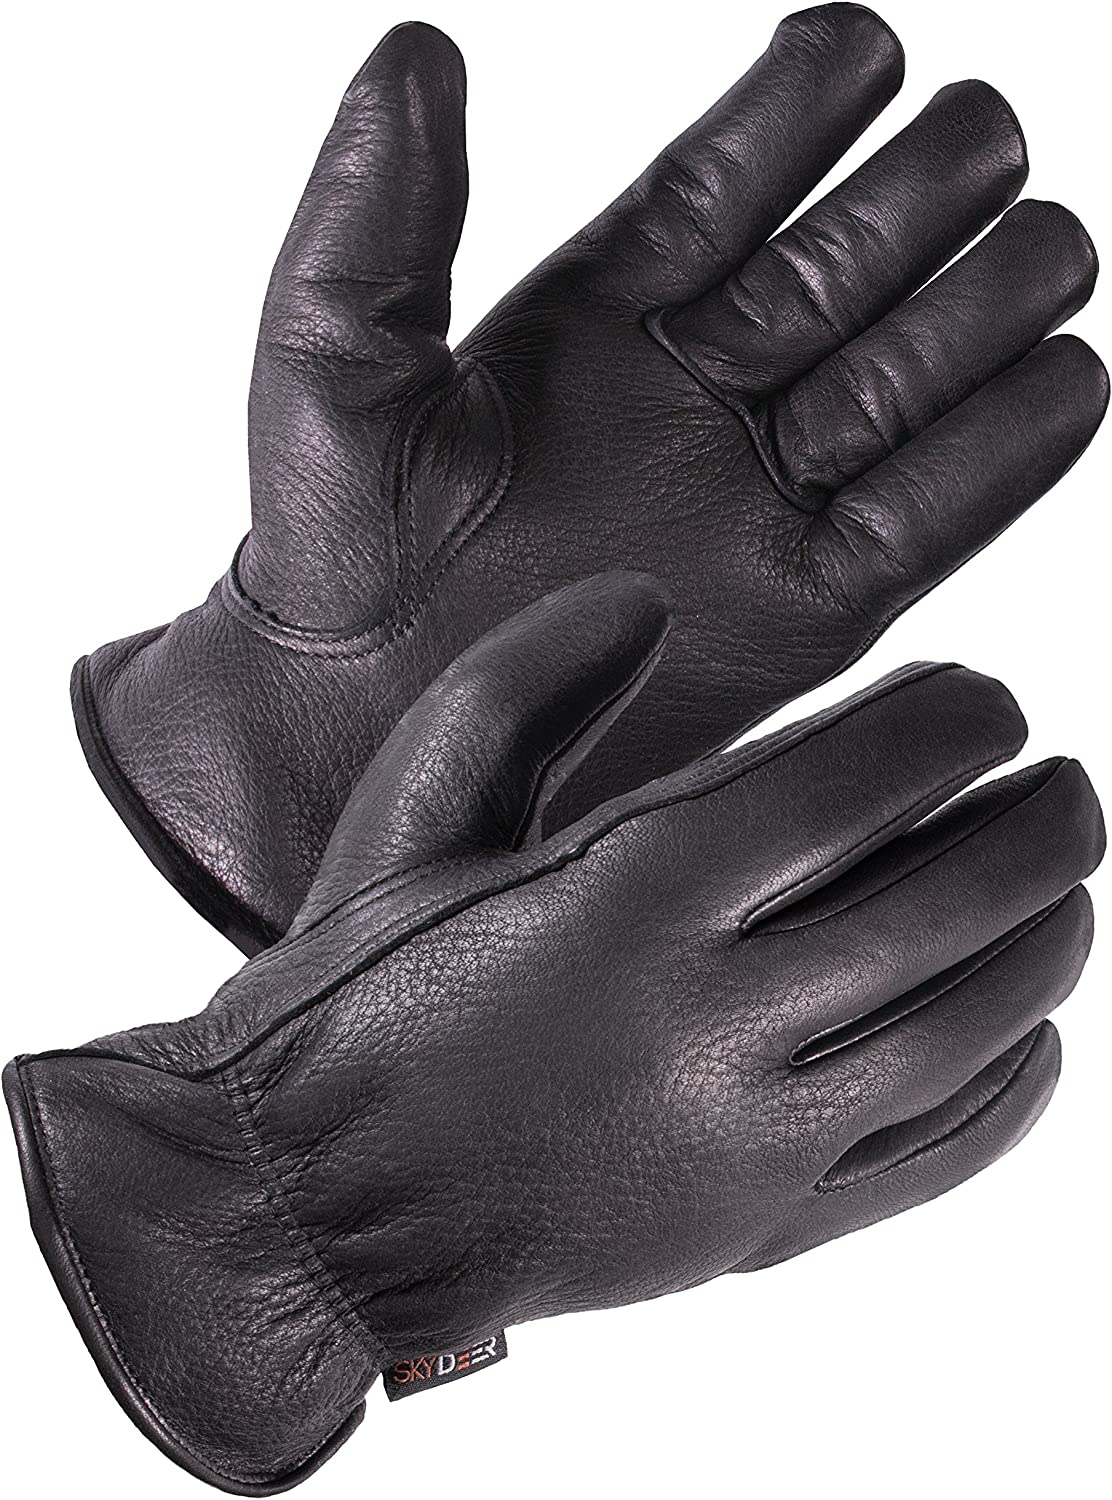 SkyDeer Hi-Performance Work Gloves